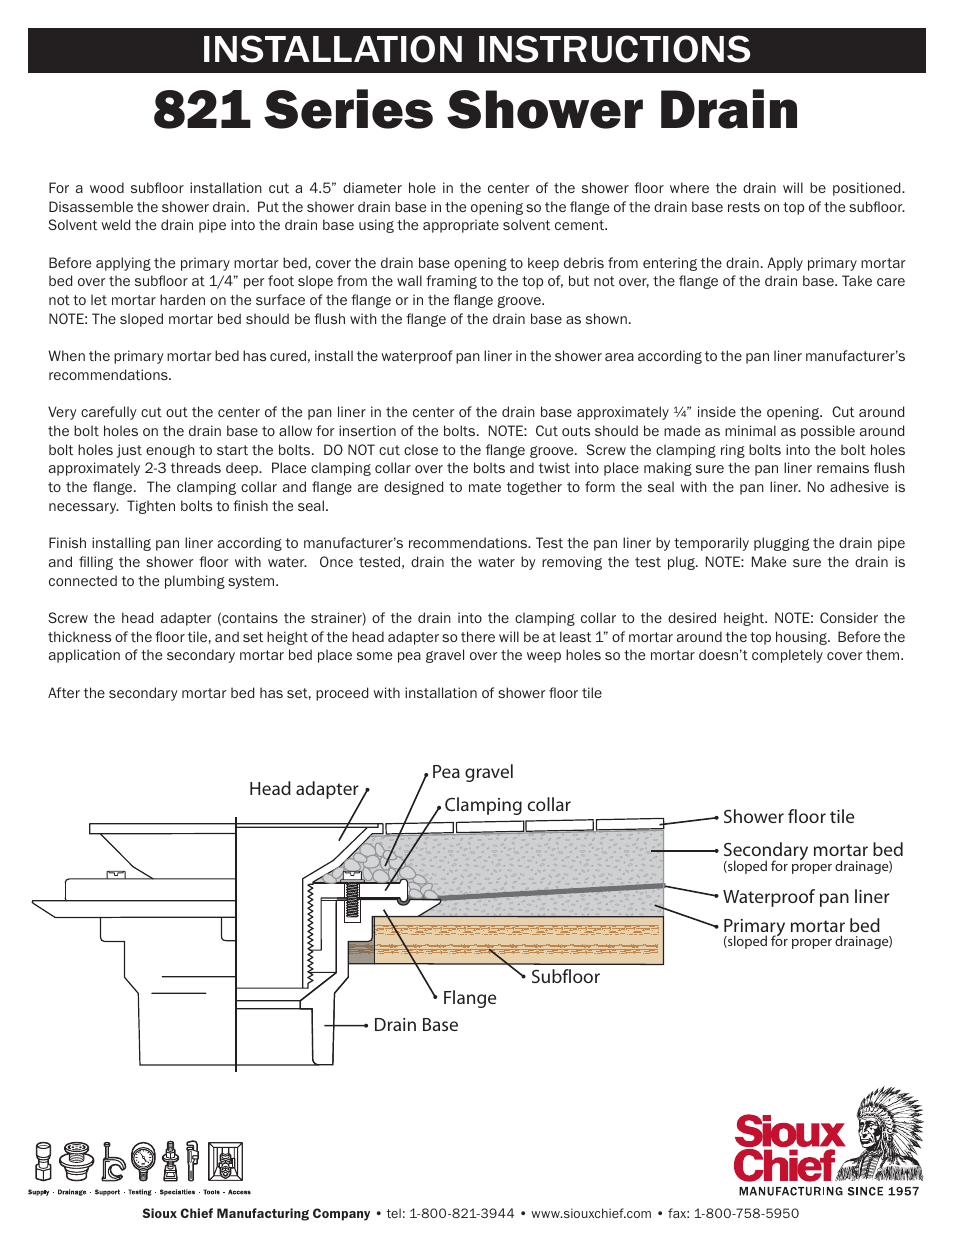 How To Install A Sioux Chief Shower Drain Image Cabinets And